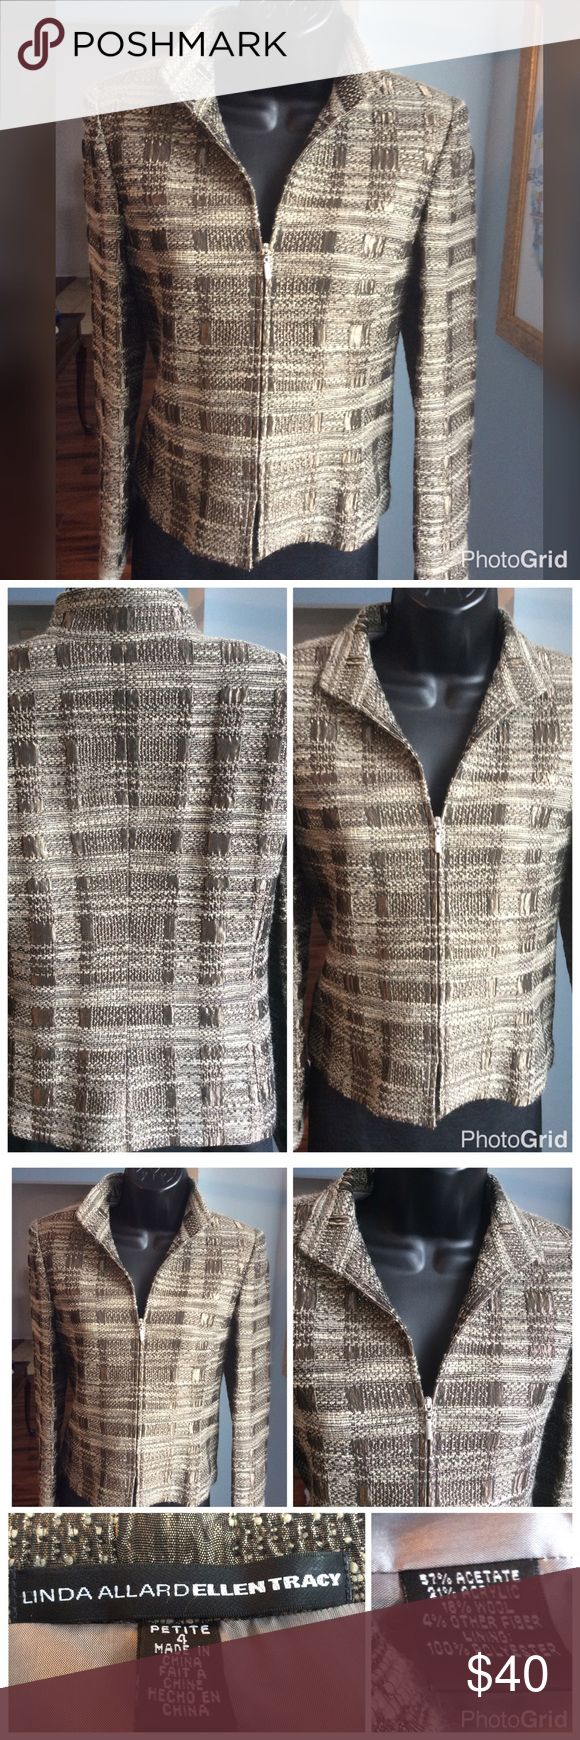 """Linda Allard Ellen Tracy Petite Jacket Beautiful lined zip up jacket. Excellent condition. Shades of brown throughout. Measures 18"""" across the chest and 20"""" long. Ellen Tracy Jackets & Coats Blazers"""